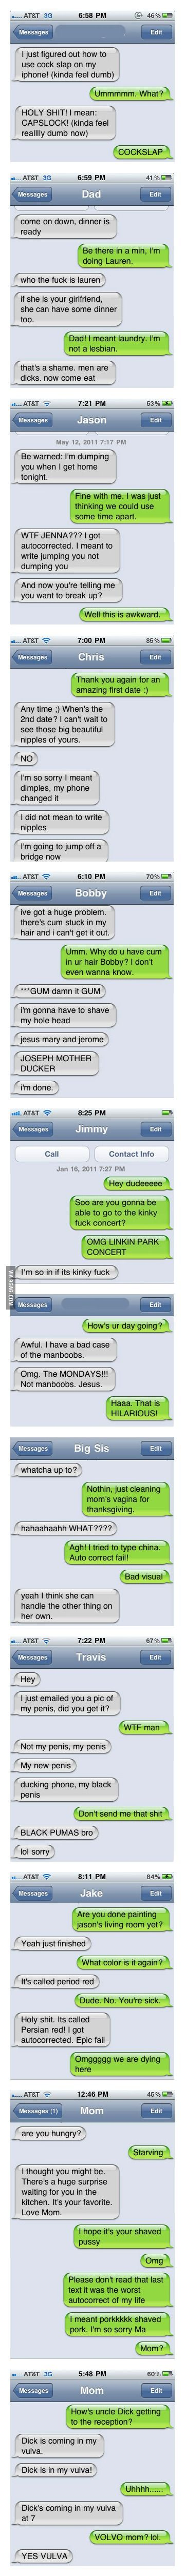 Funniest Auto-Corrects Of 2011